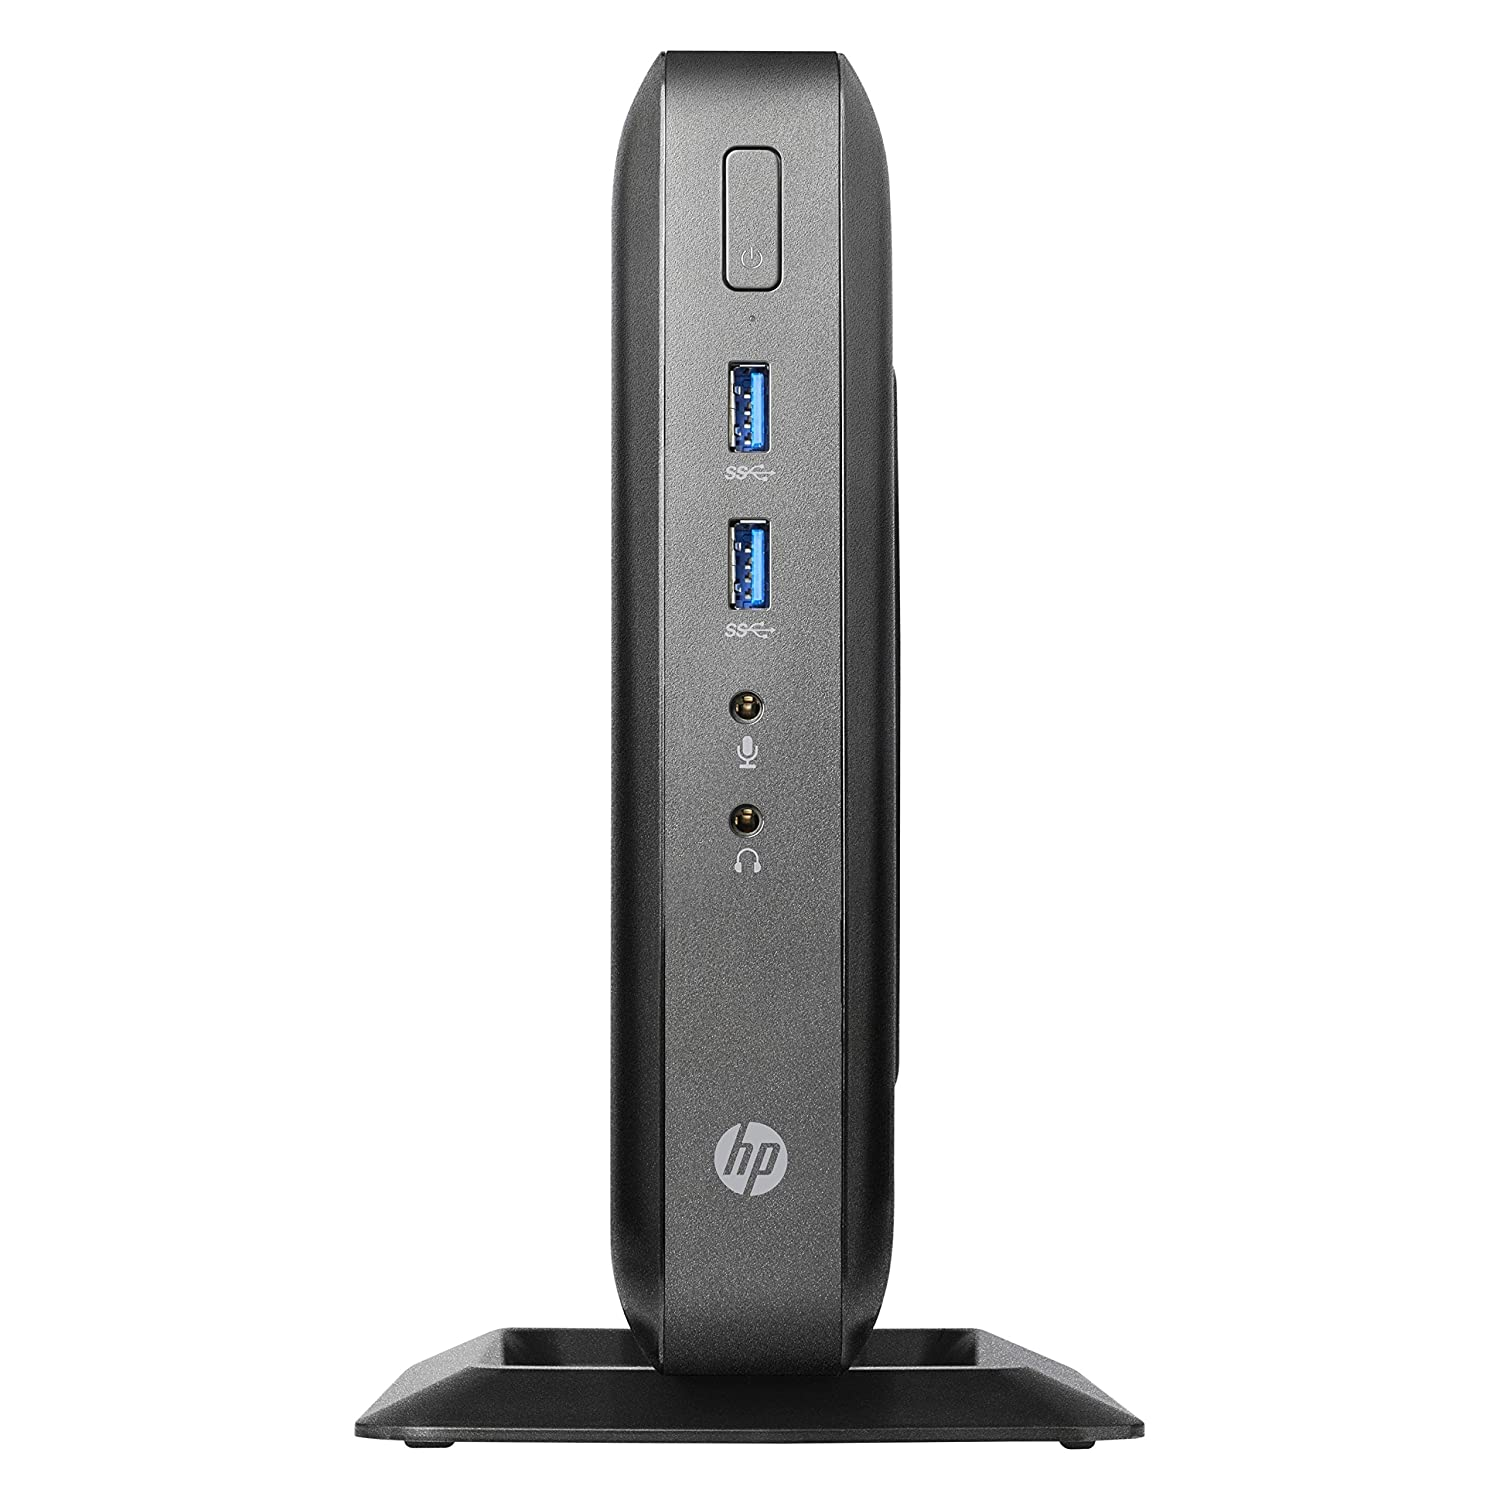 HP Flexible Thin Client G9F04AT#ABA Desktop (Black)